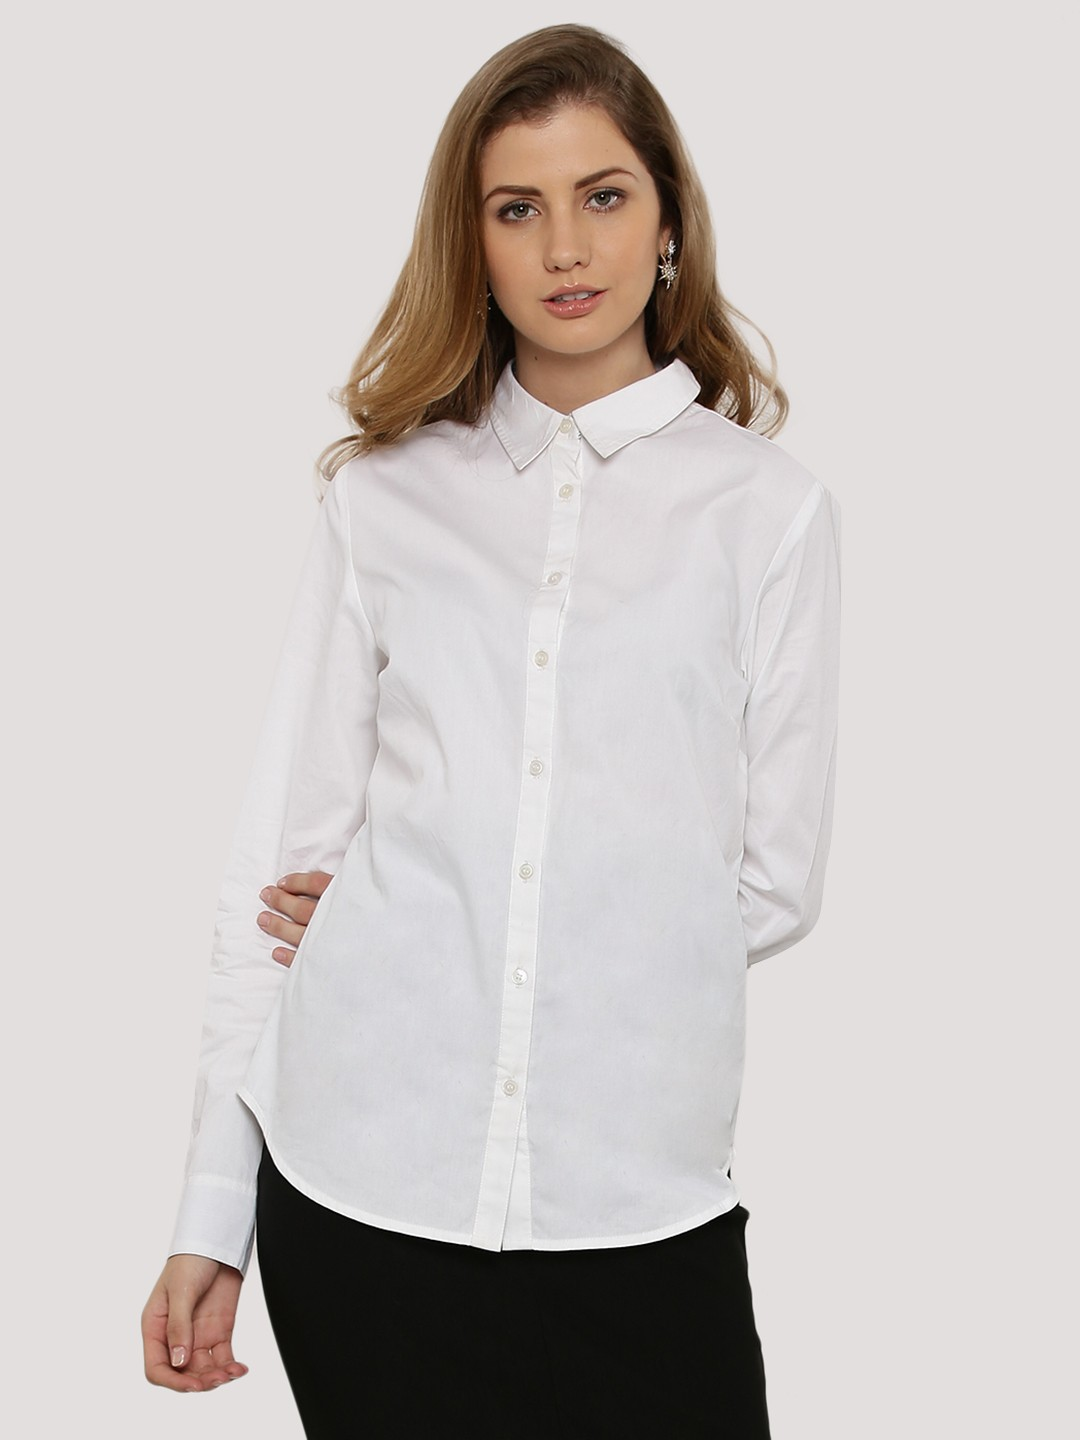 buy koovs tailored fitted shirt for women women 39 s white